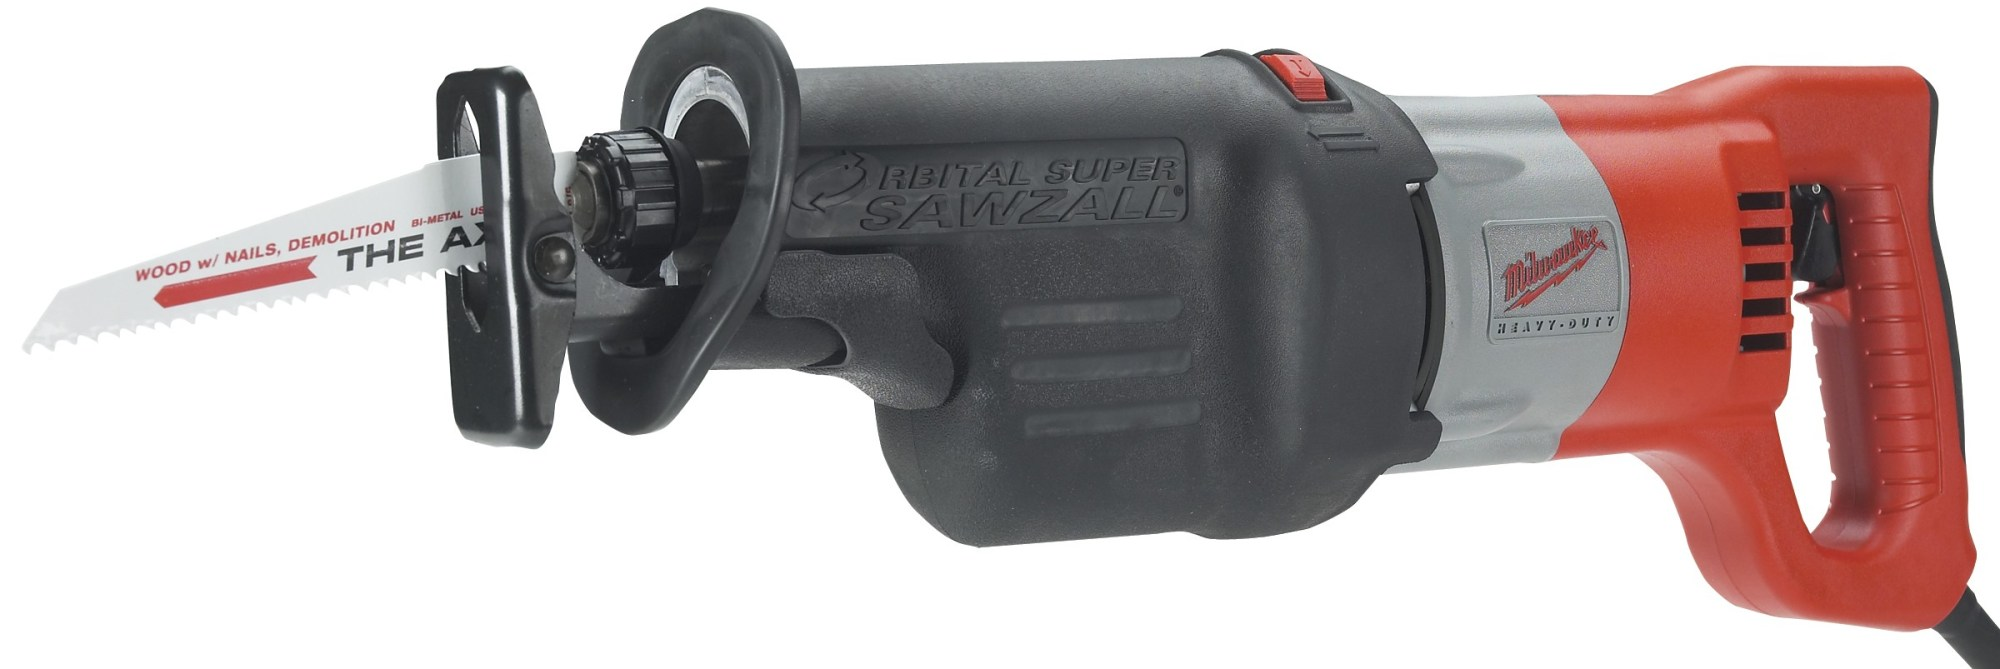 hight resolution of milwaukee 6536 21 13 amp orbital super sawzall recip saw zoom